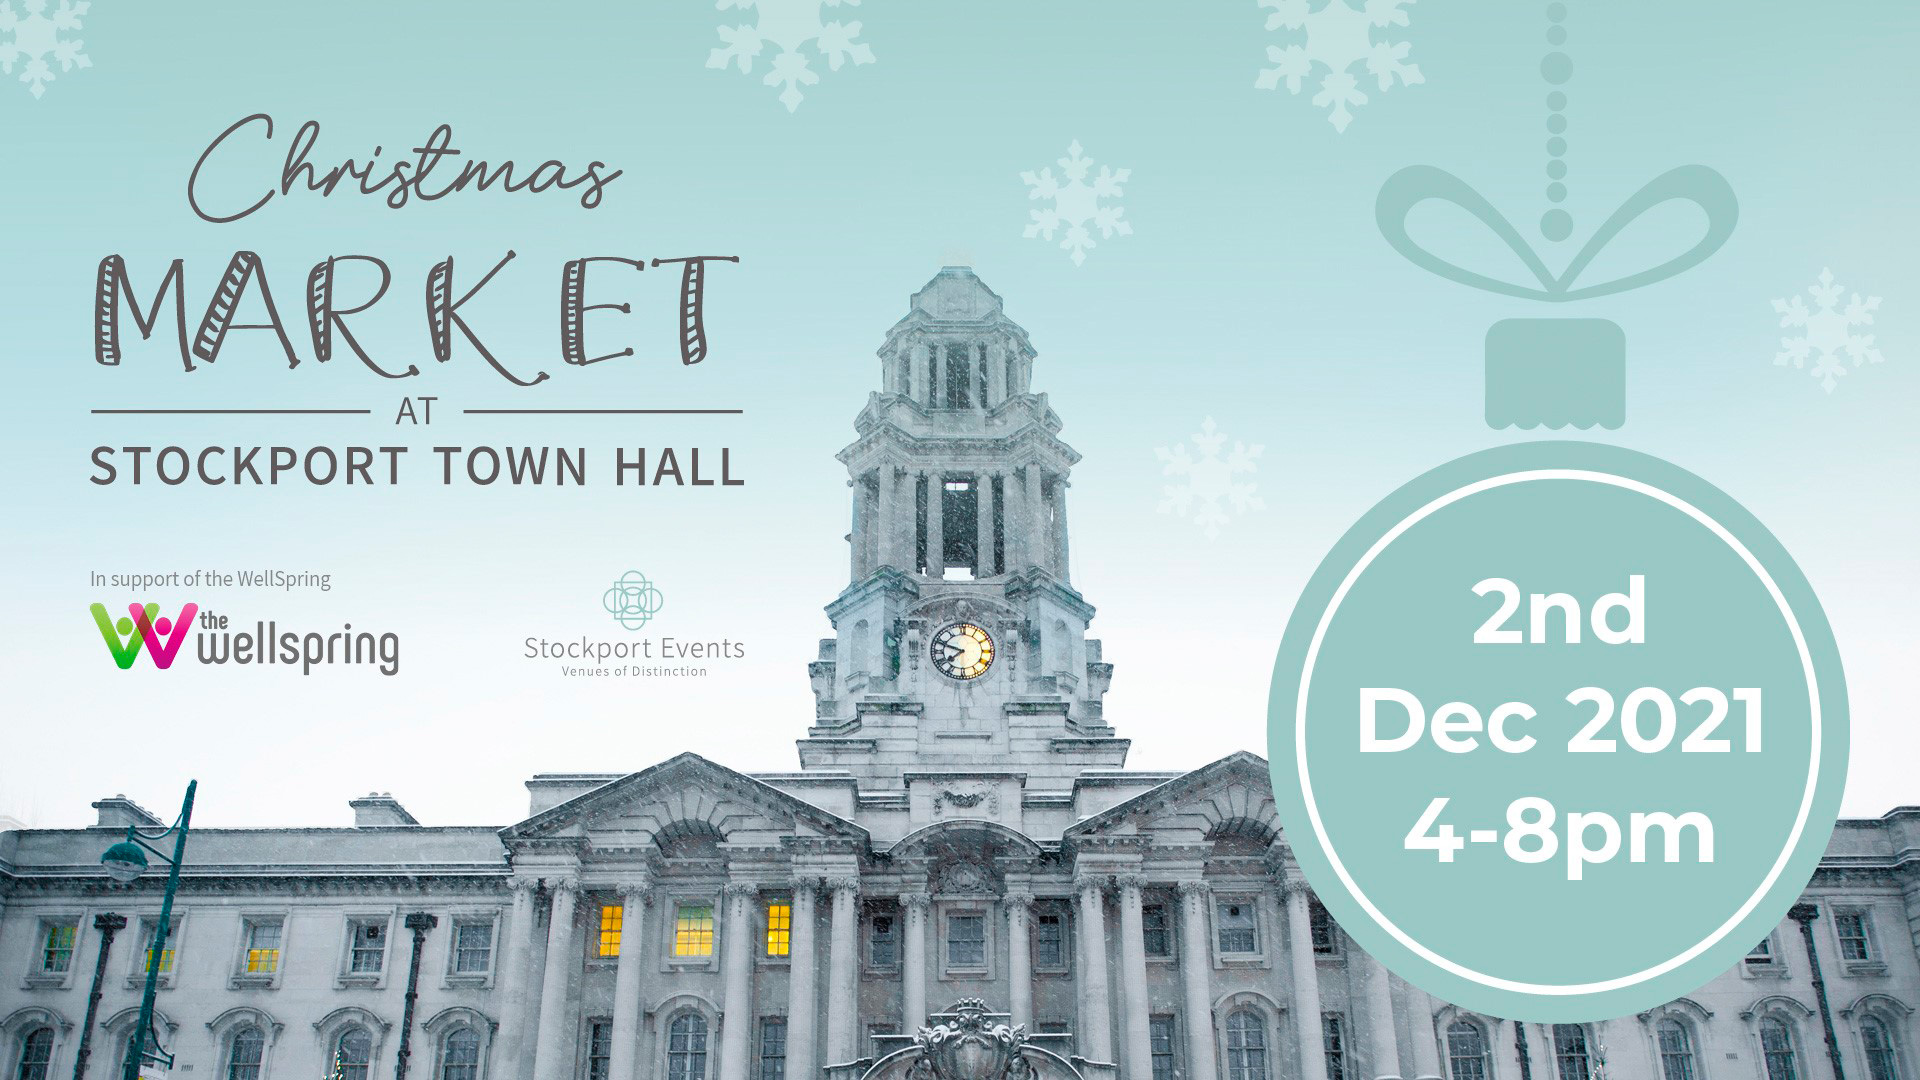 Christmas Markets at Stockport Town Hall